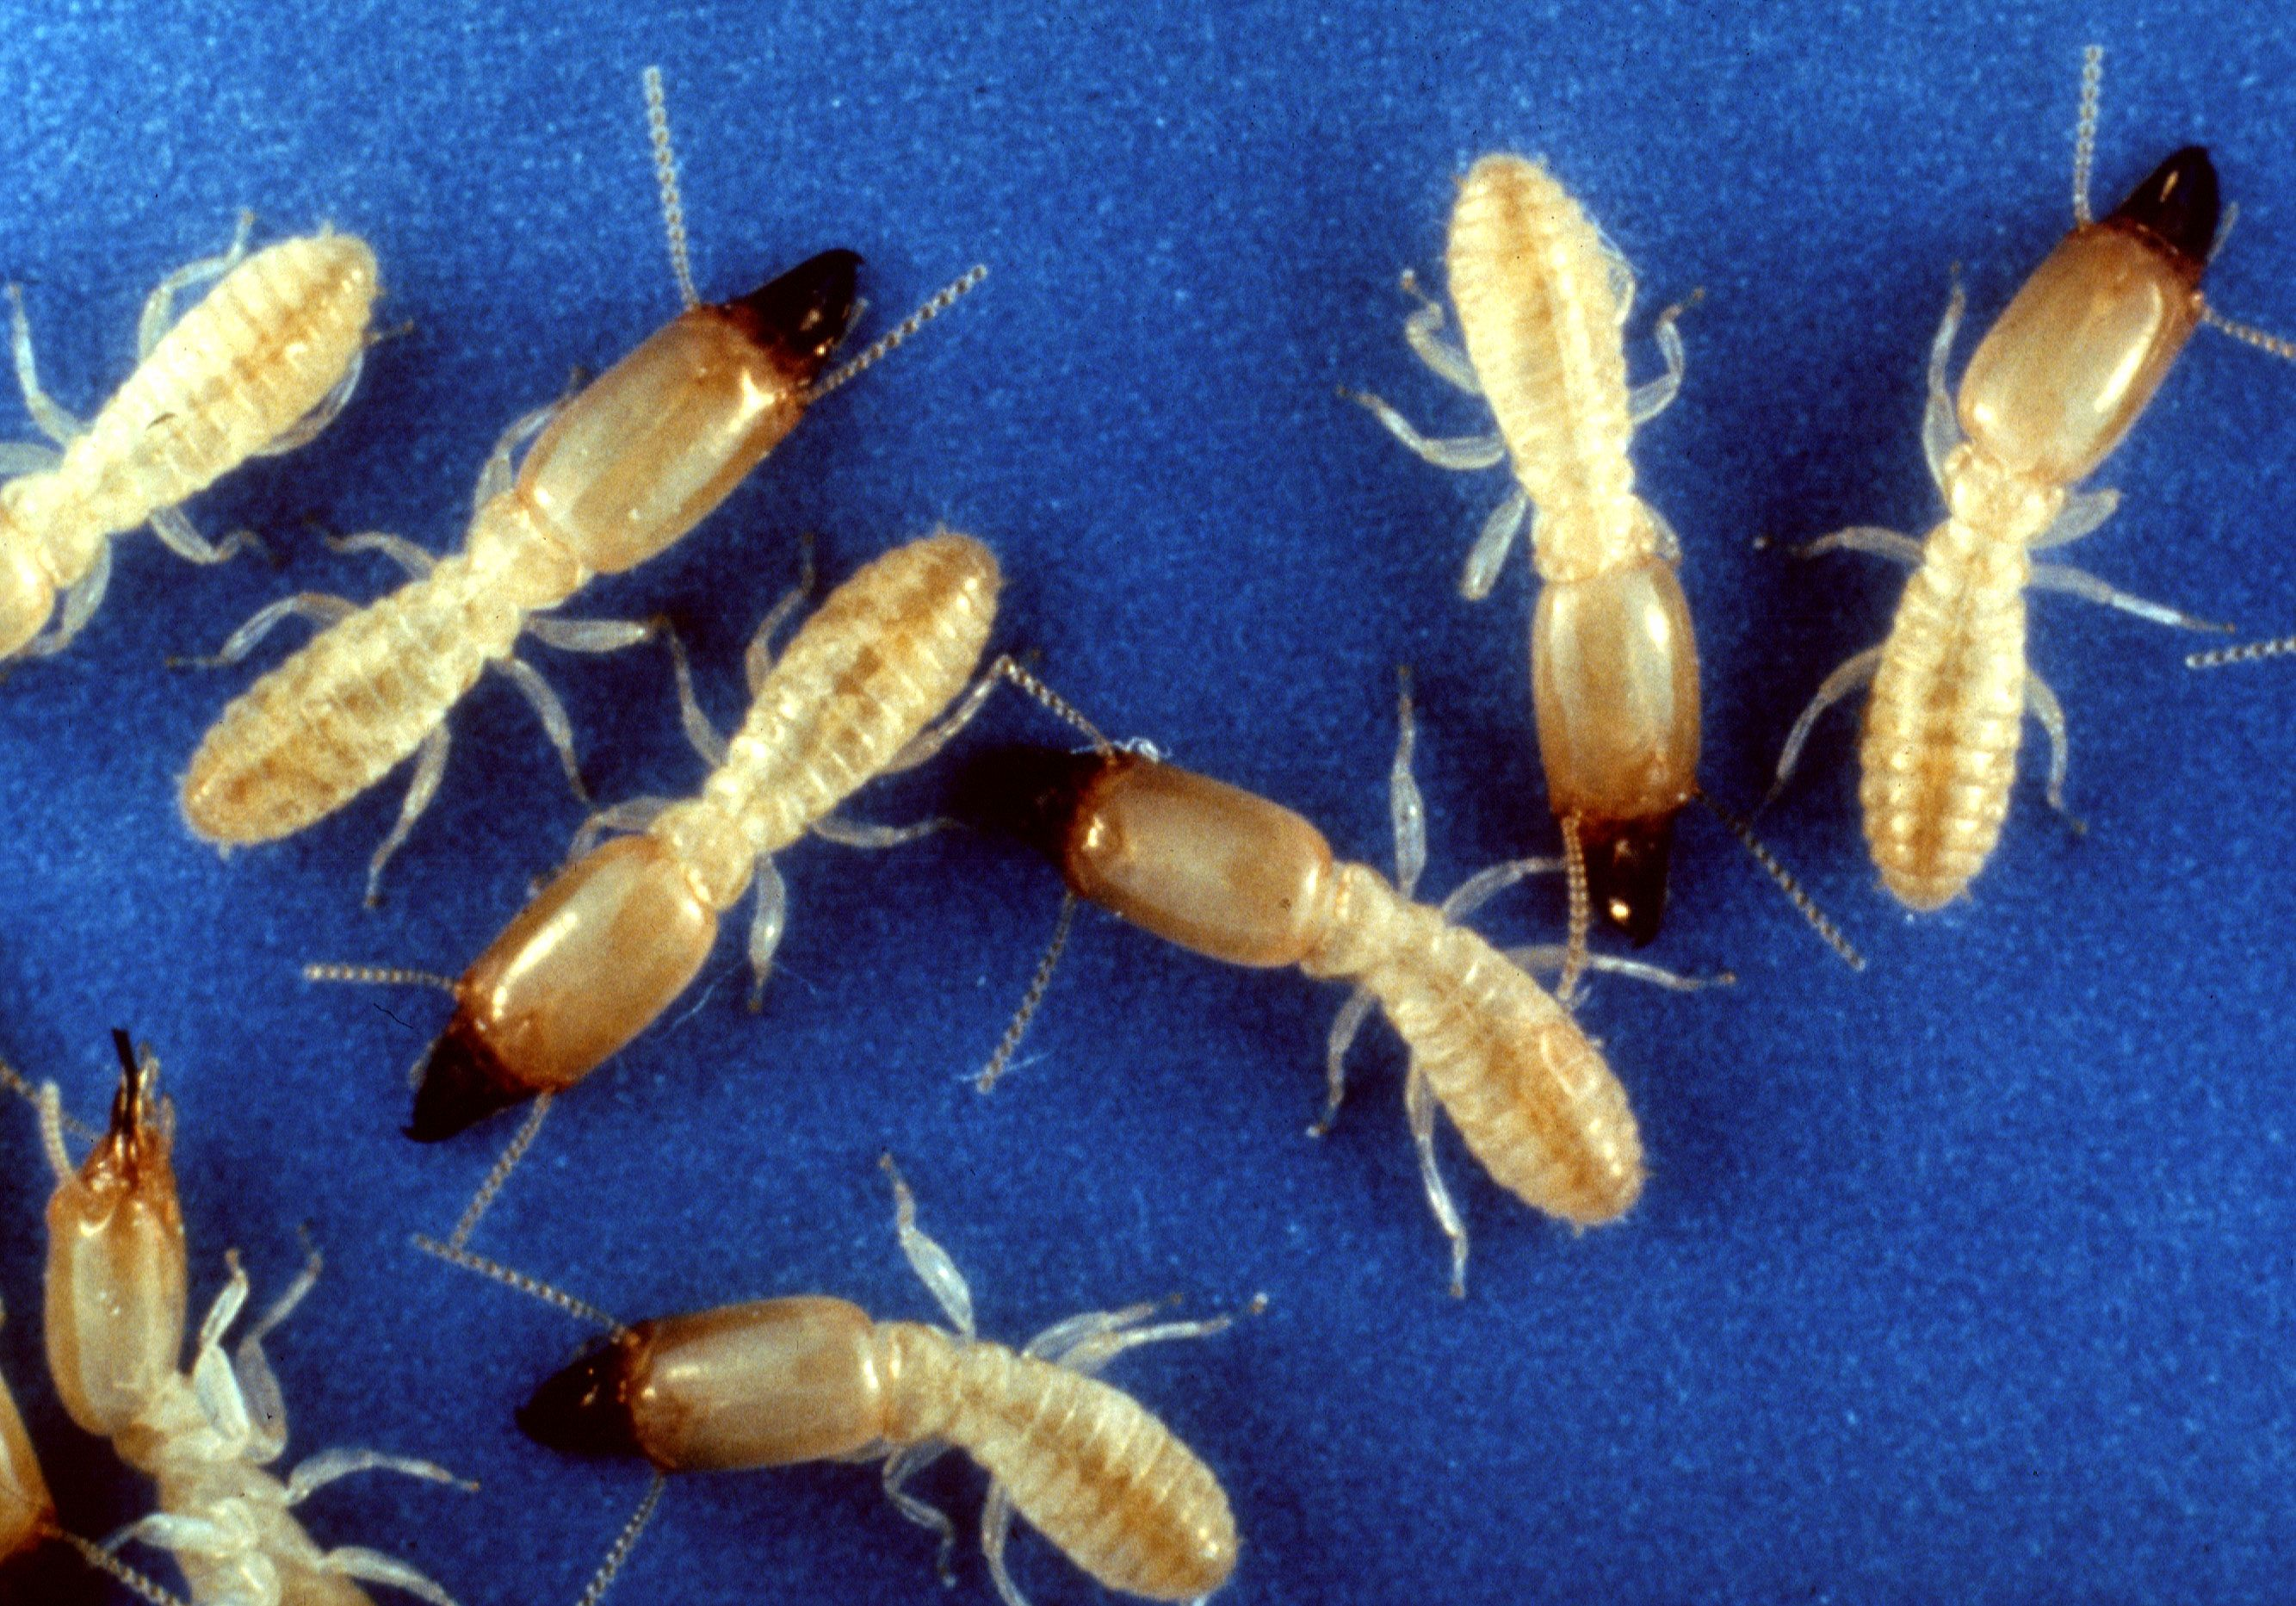 Eastern Subterranean Termite Wikipedia The Free Encyclopedia Termite Control Termite Infestation Termite Treatment